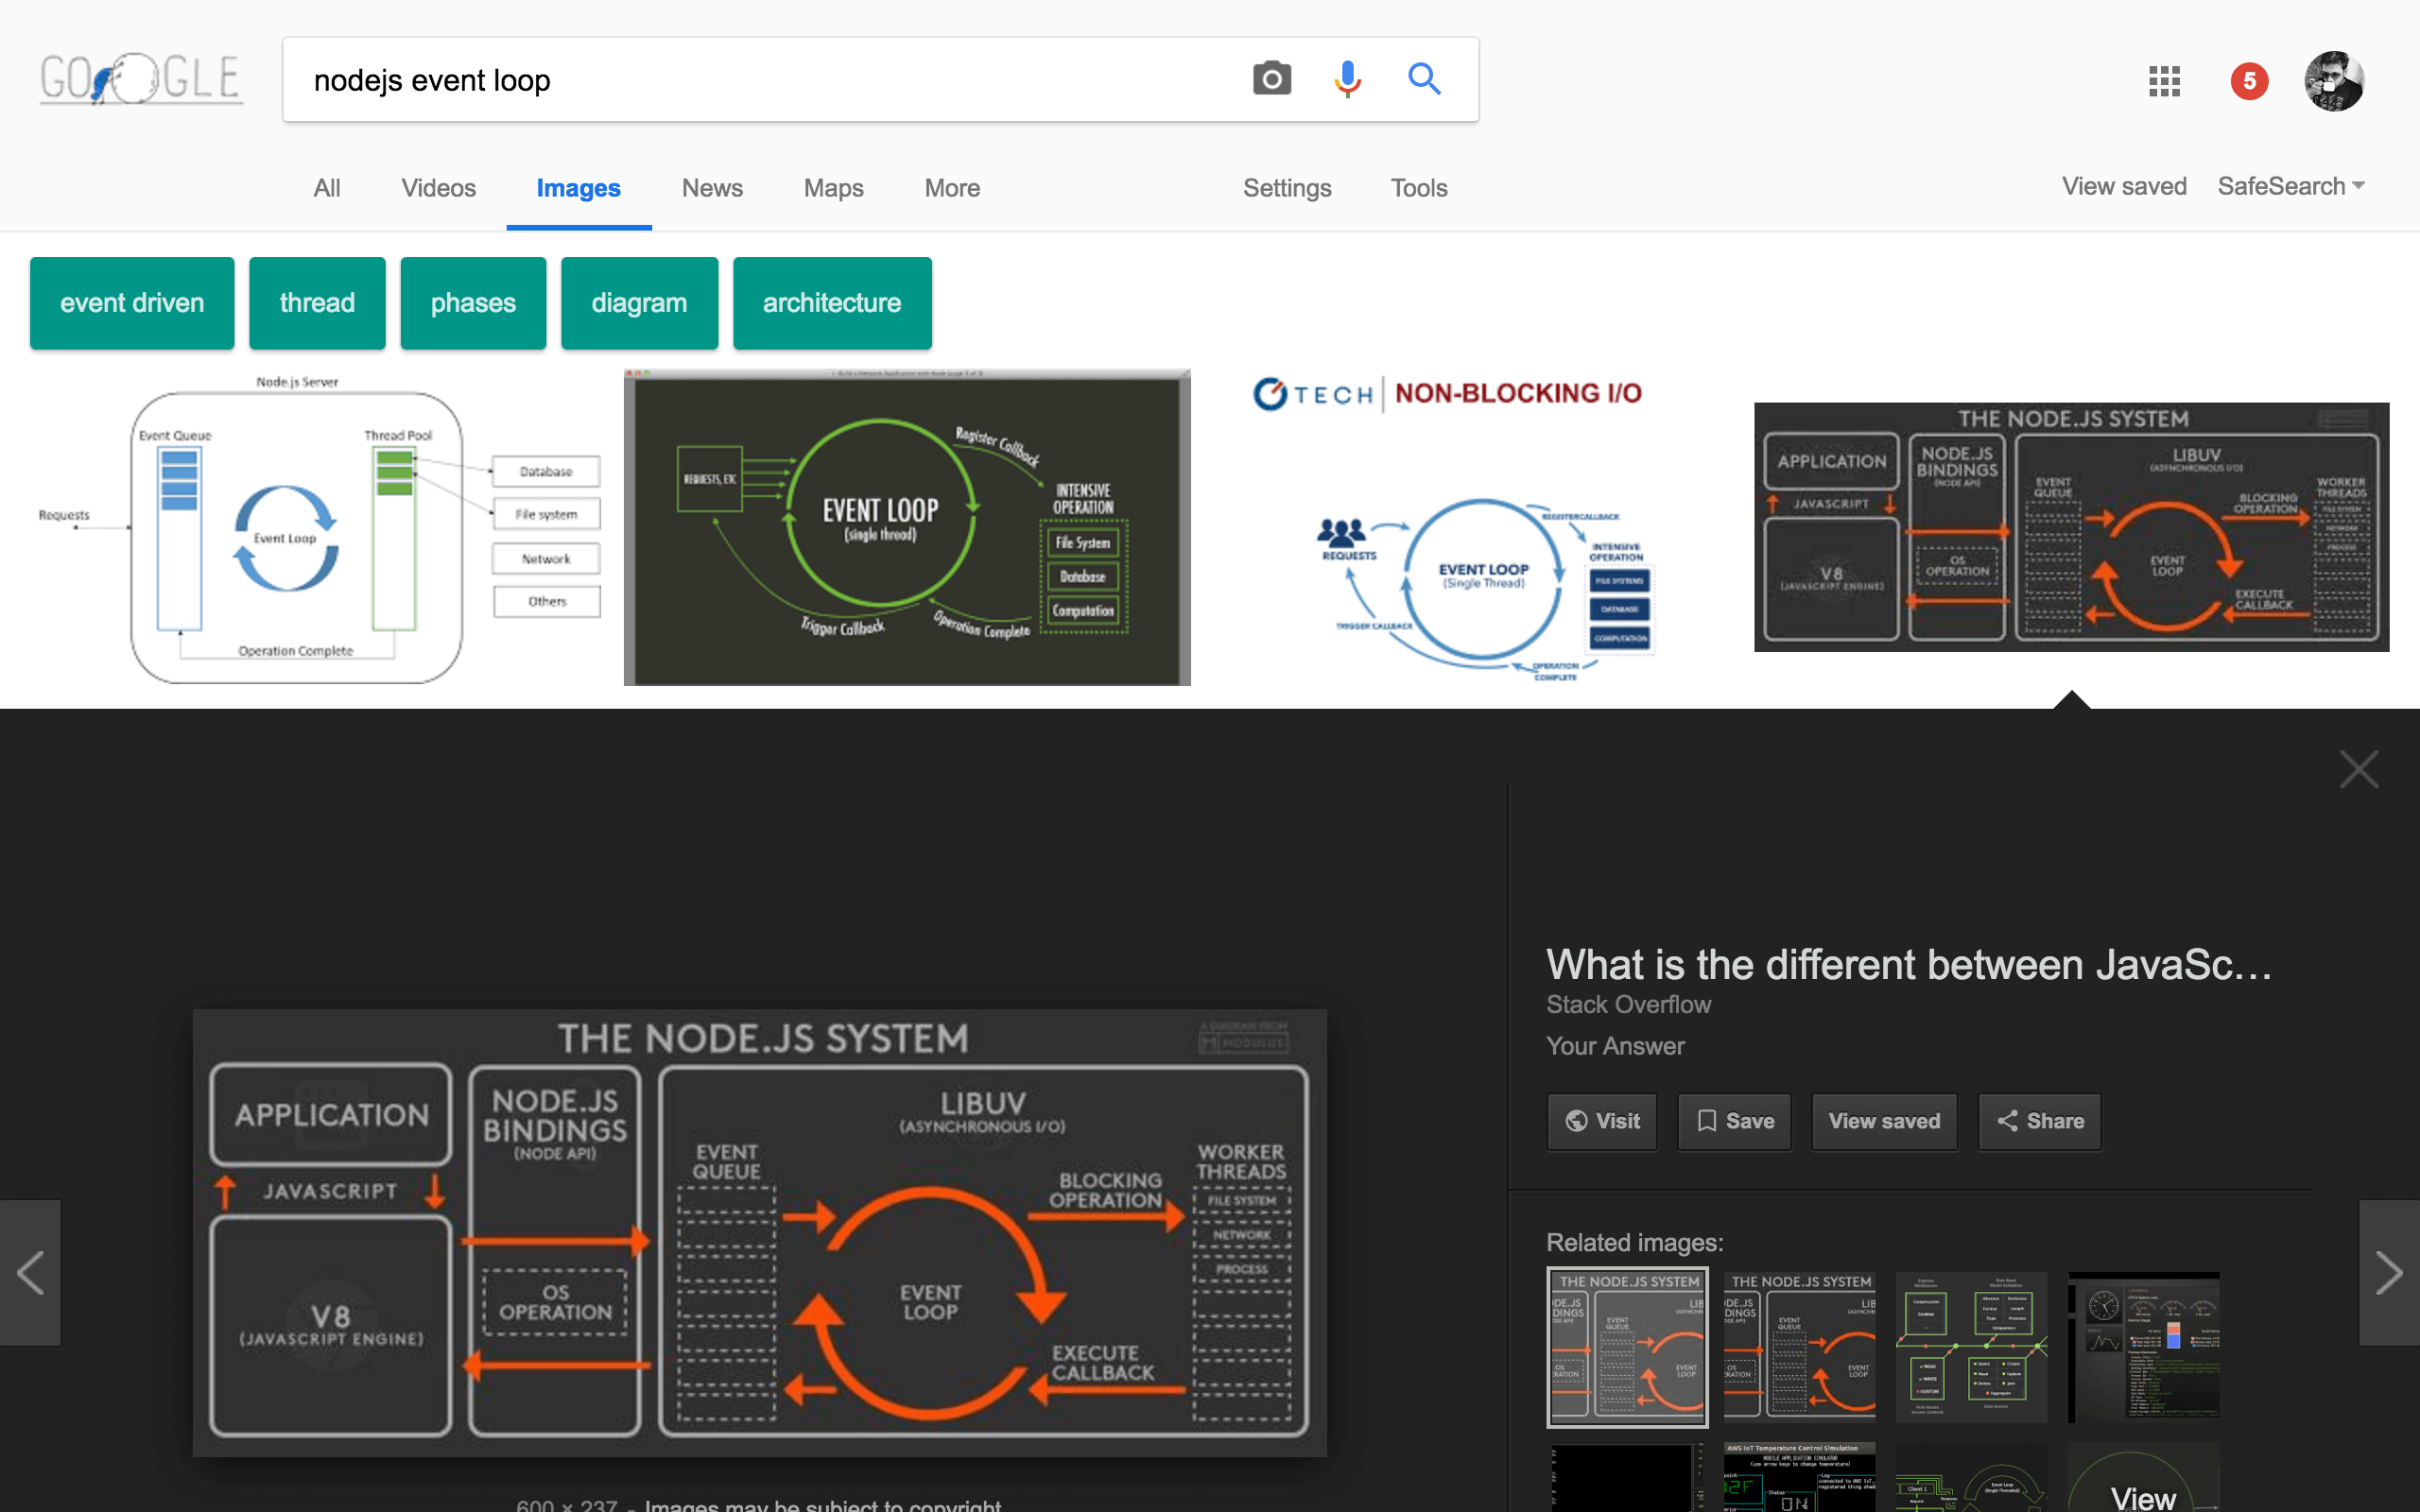 event loop google search image